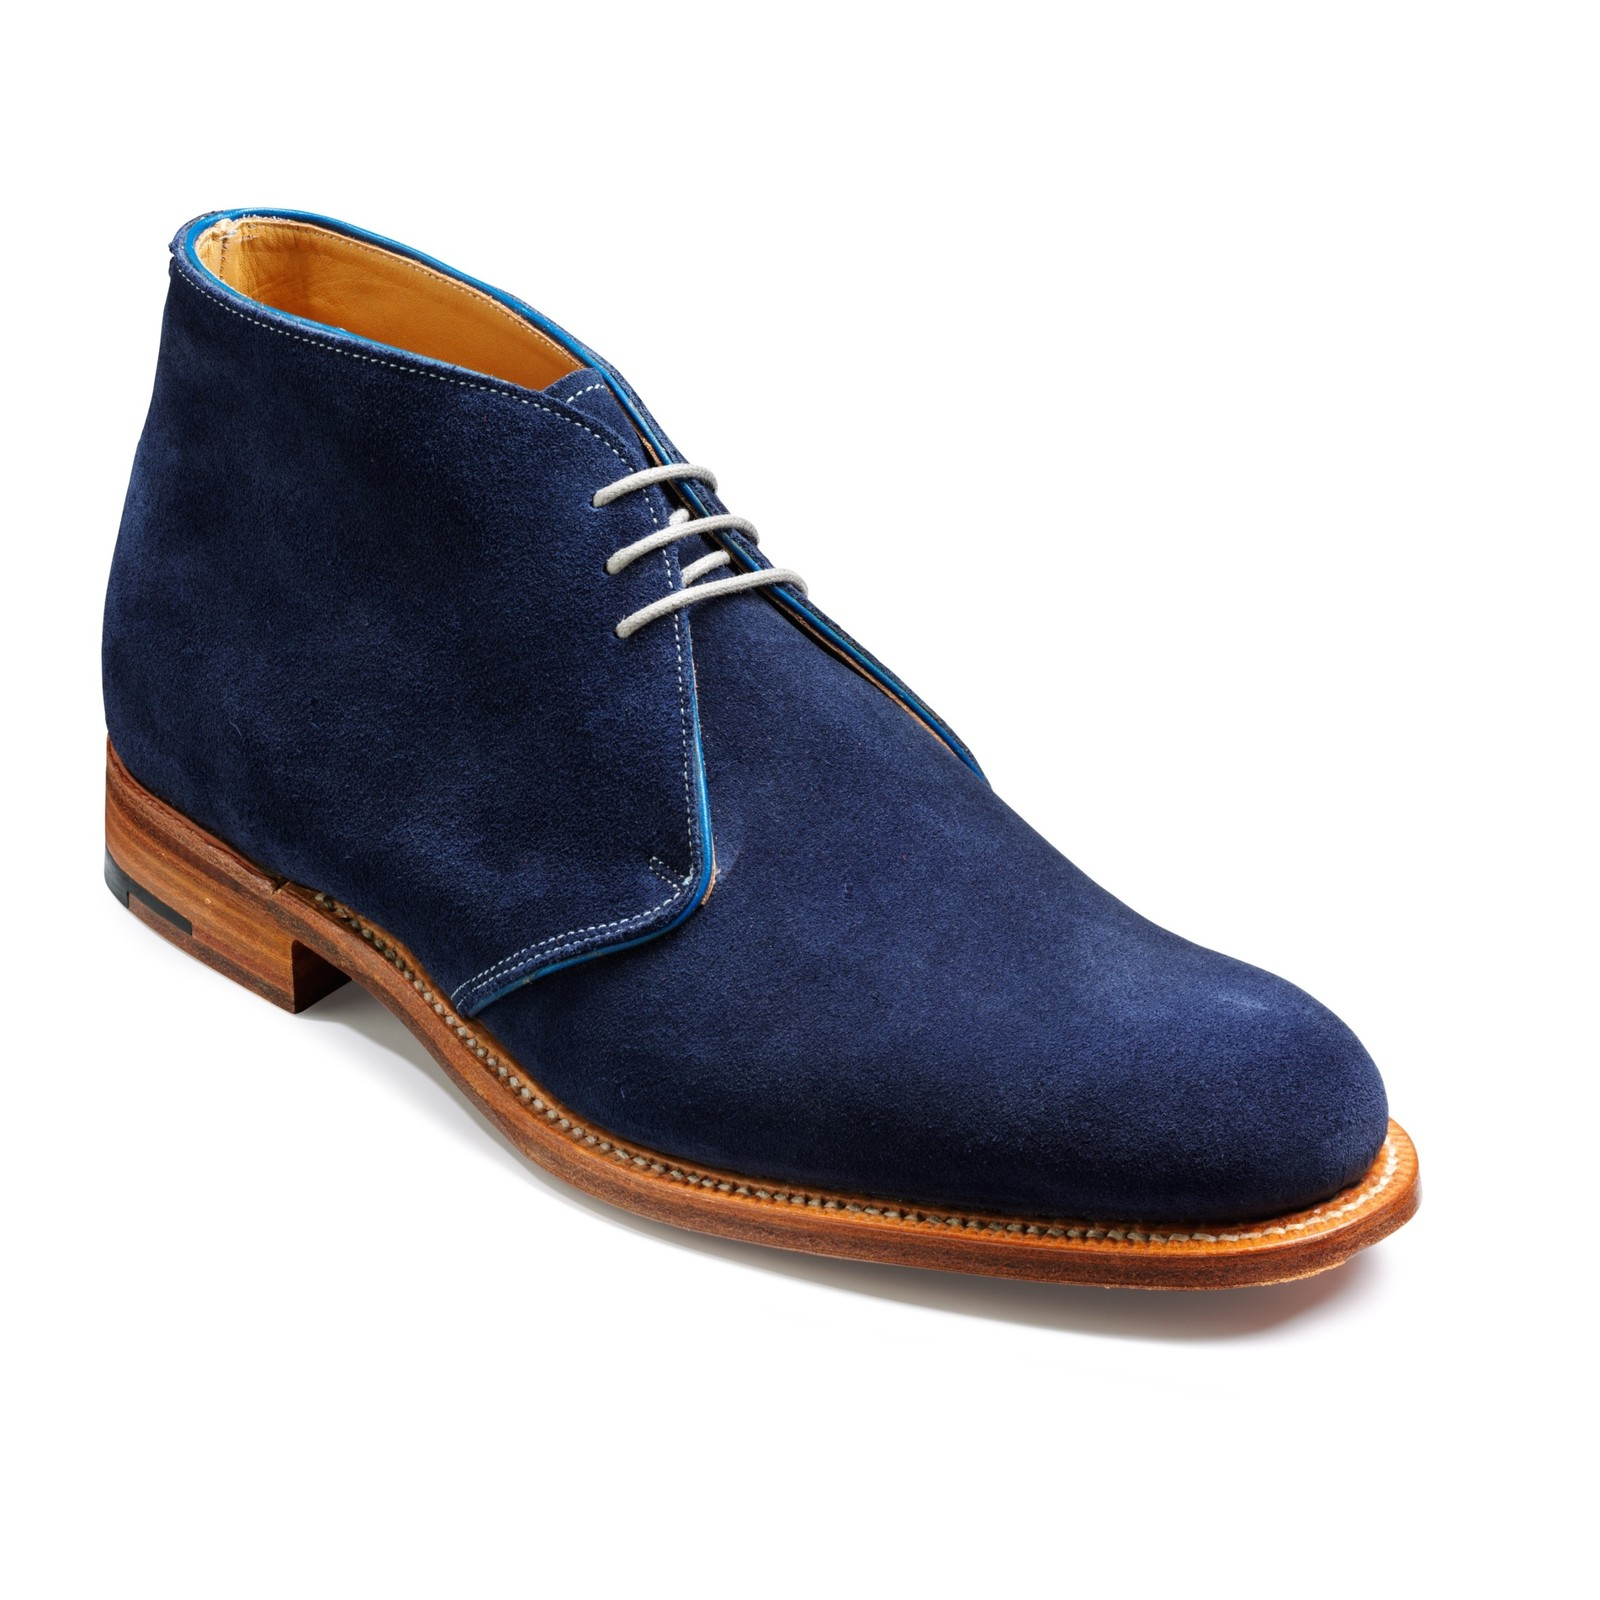 handmade navy blue suede dress boot mens suede shoes